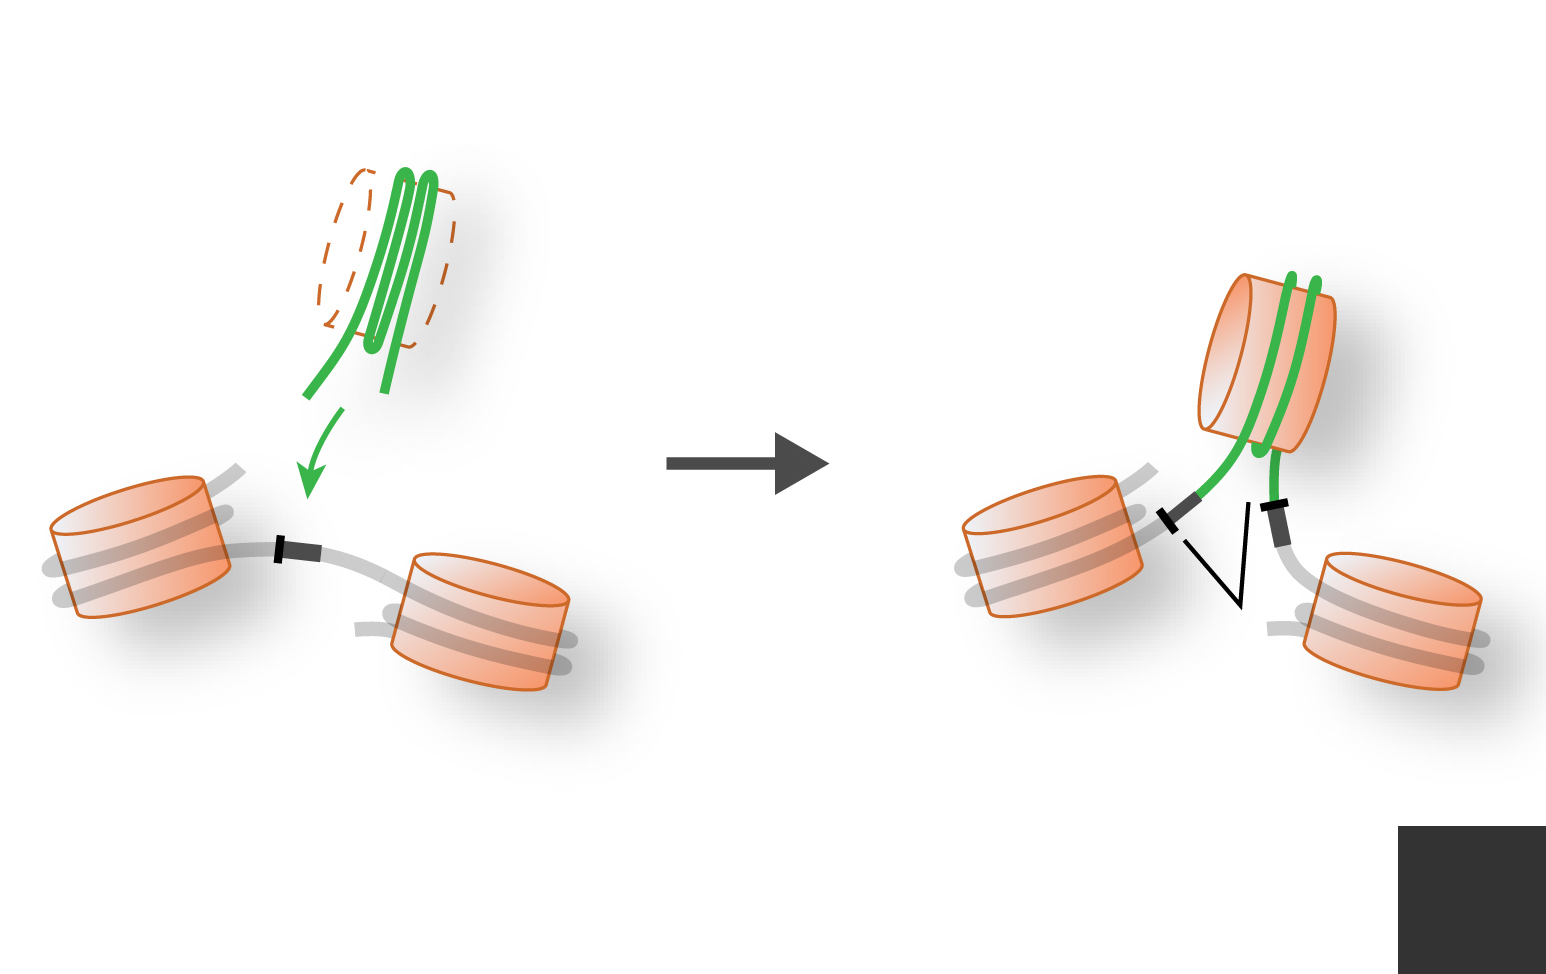 Representation of a DNA transposon jumping into a gene to make a new intron.